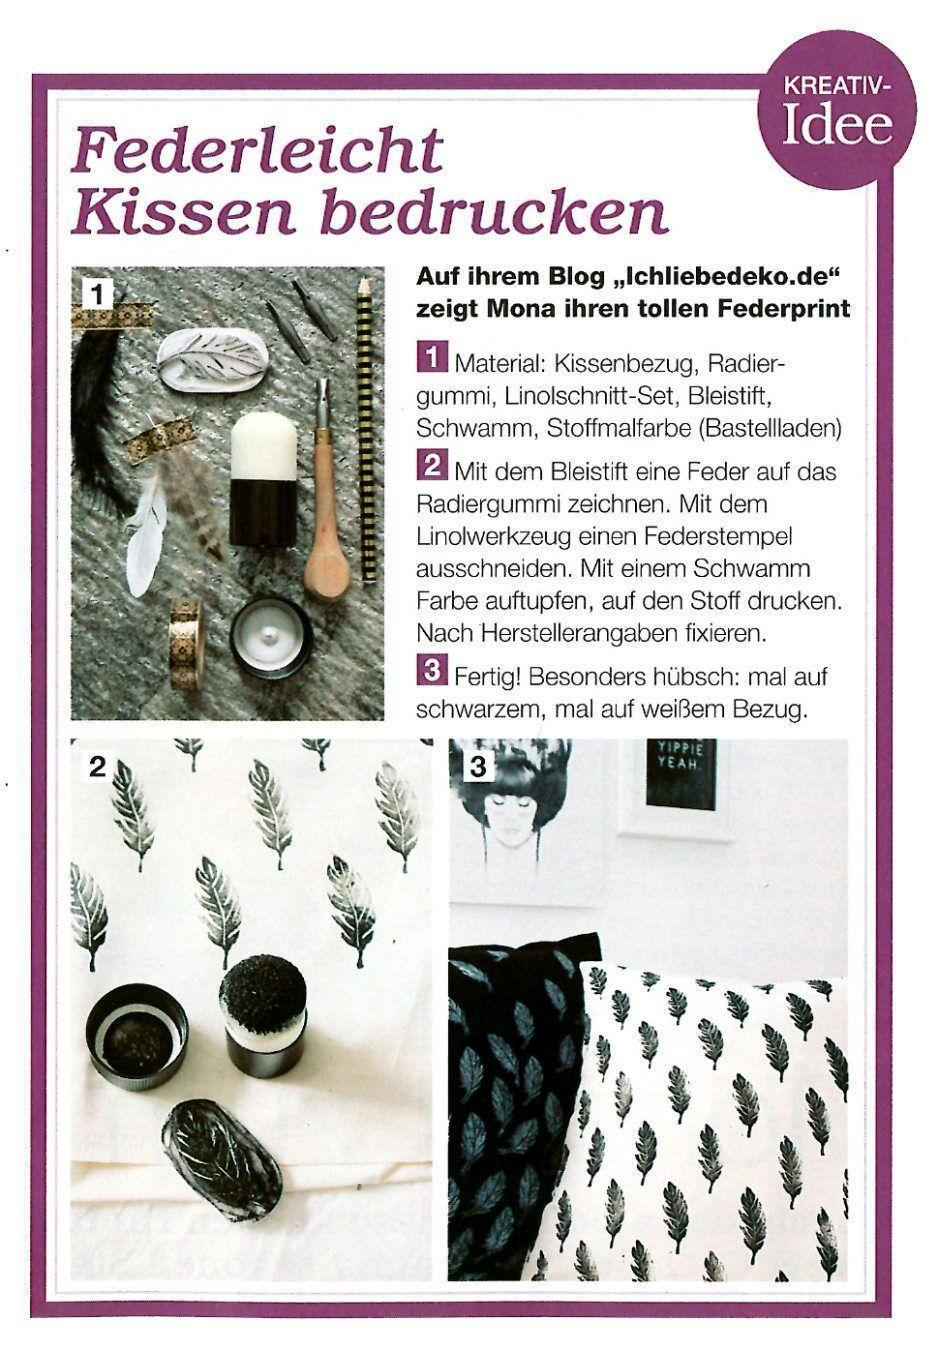 presse referenzen ich liebe deko. Black Bedroom Furniture Sets. Home Design Ideas